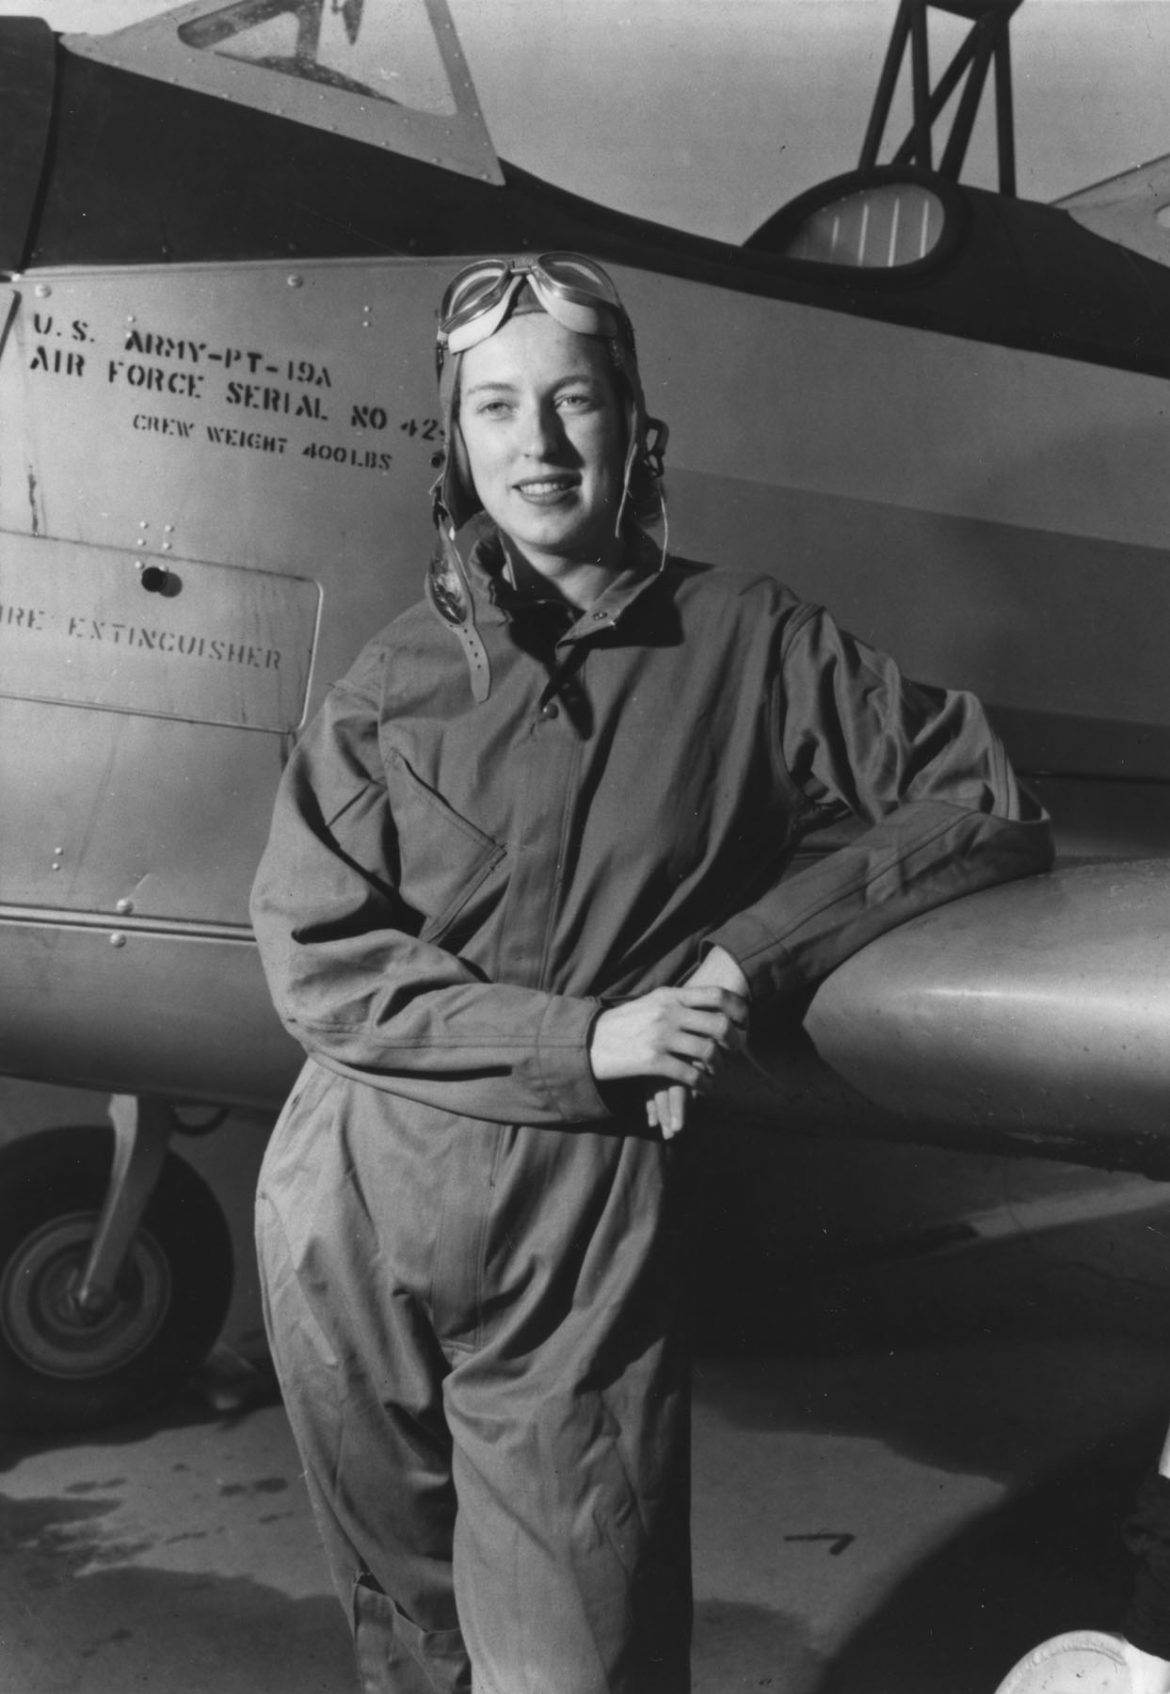 WASP Pilot Cornelia Fort with her PT-19A Plane